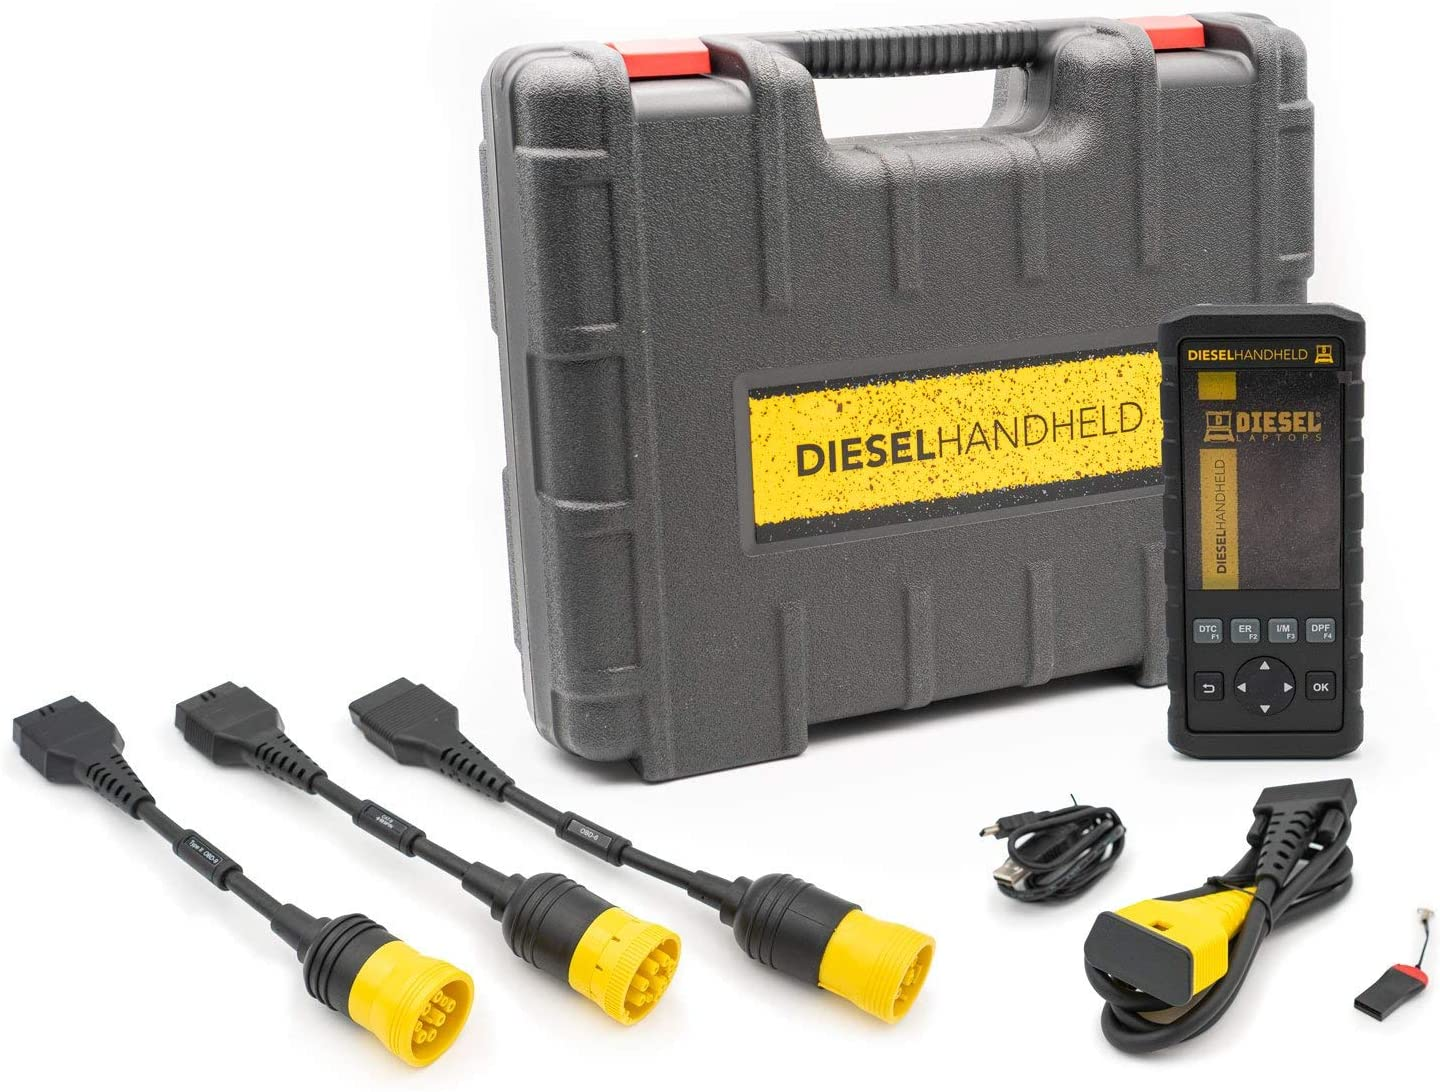 Diesel Laptops Handheld Heavy-Duty Scan Tool with Regen with 365 Day Truck Fault Codes Subscription